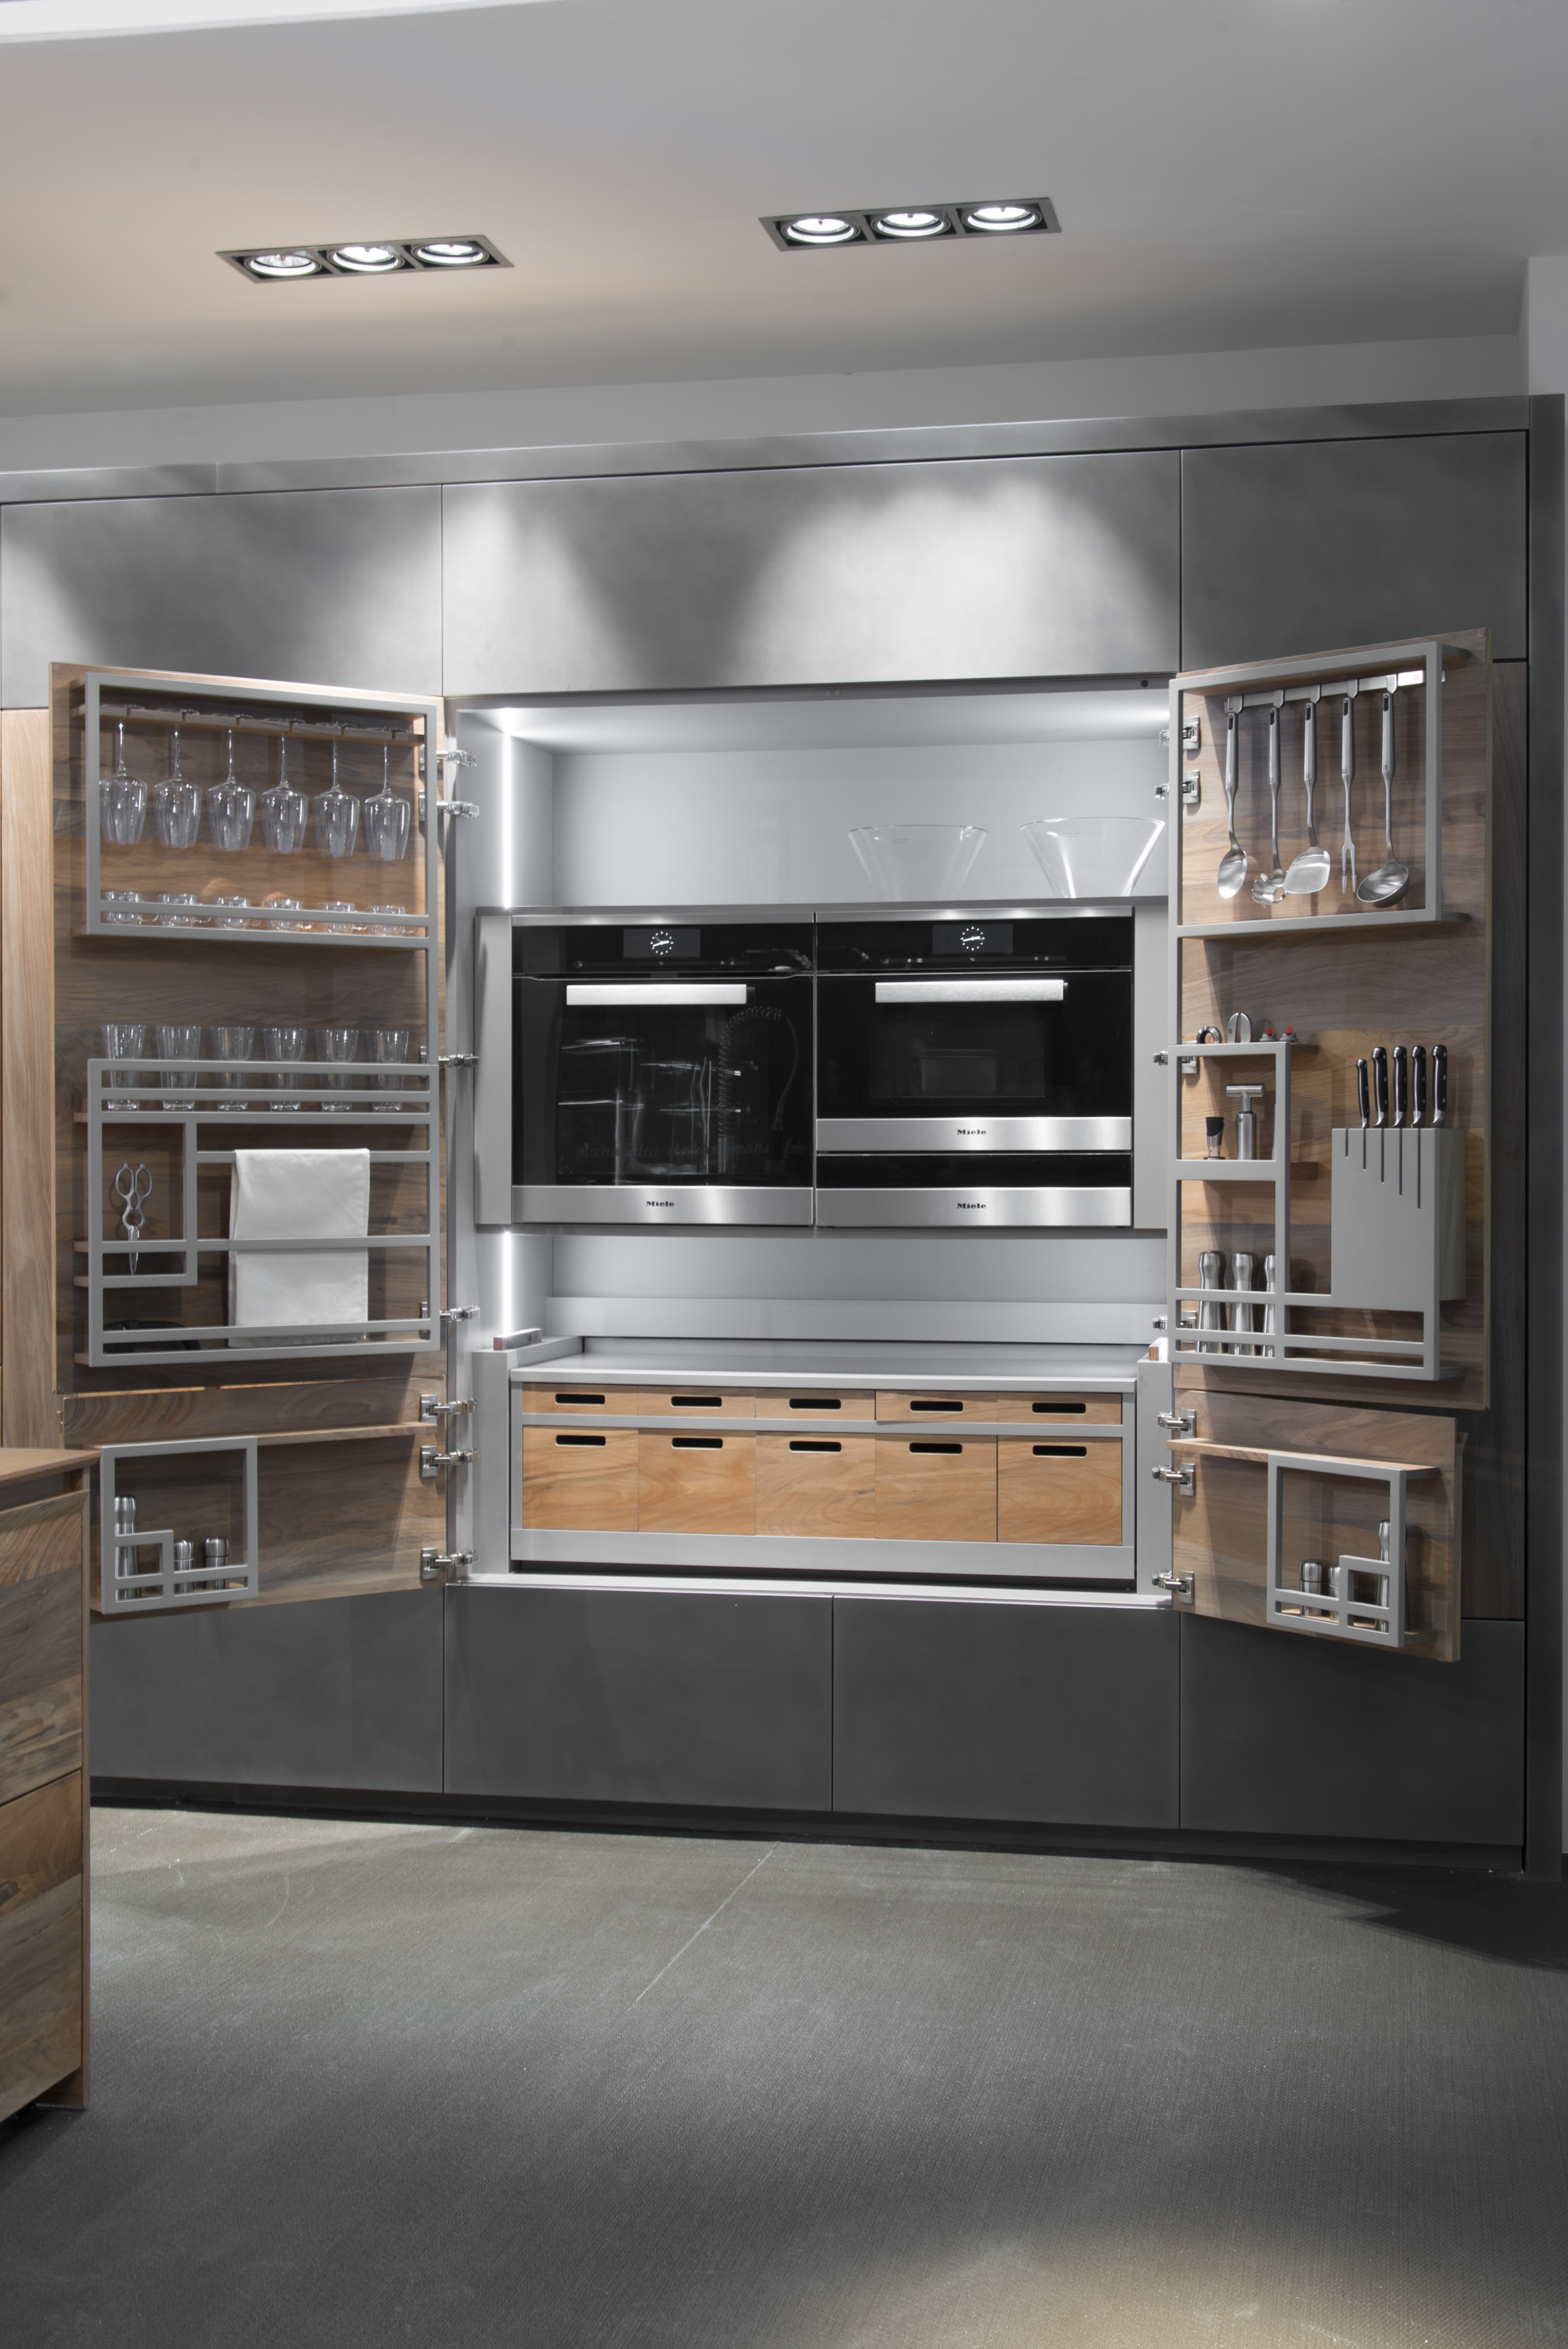 Hideaway Kitchen Unit Chef De Cuisine By Toncelli Cucine